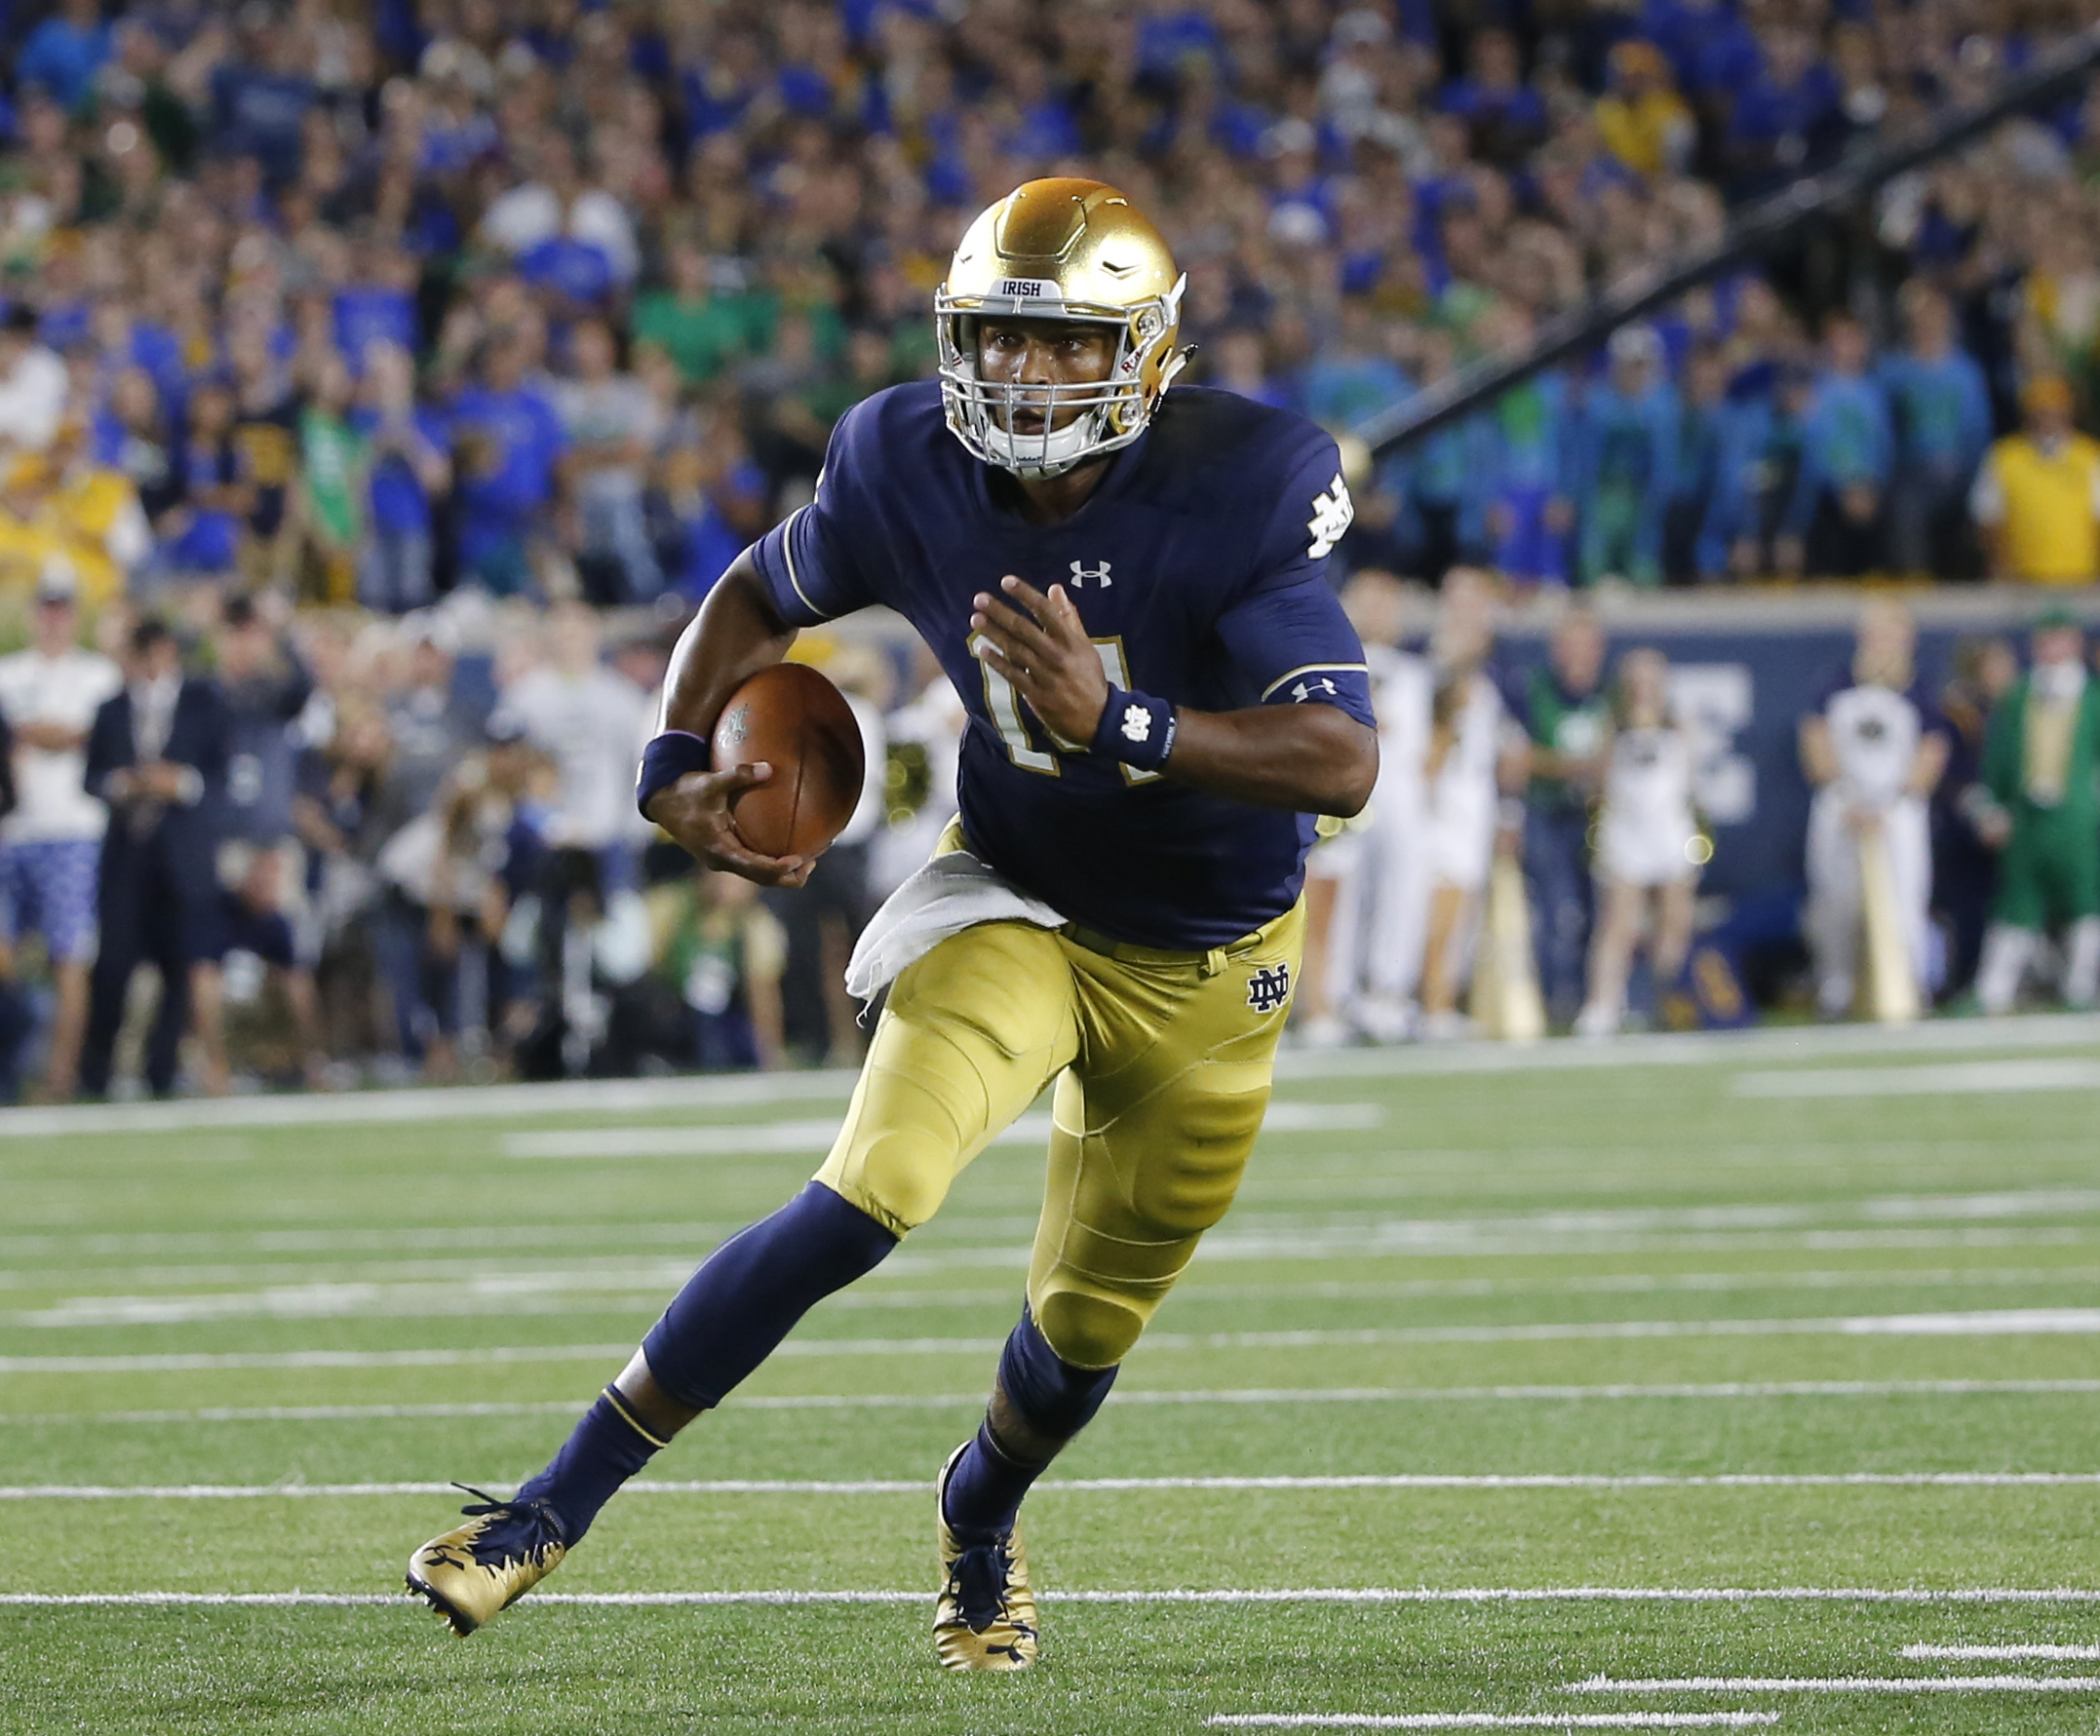 FILE - In this Sept. 17, 2016, file photo, Notre Dame quarterback DeShone Kizer (14) scrambles during the first half of an NCAA college football game against Michigan State, in South Bend, Ind. Notre Dame coach Brian Kelly isnt concerned that DeShone Kize